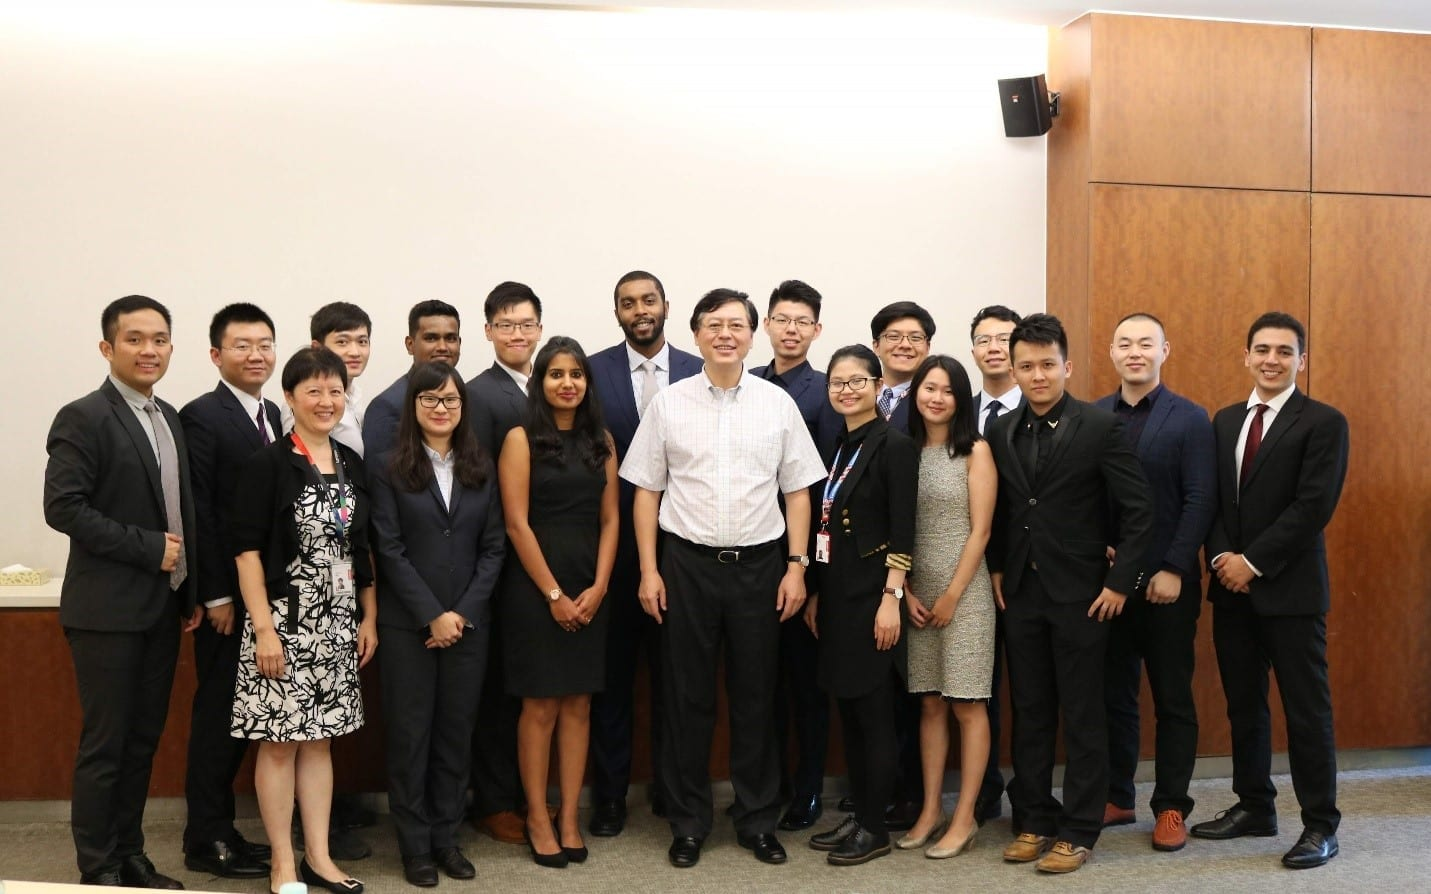 Lenovo's Global Future Leaders Program